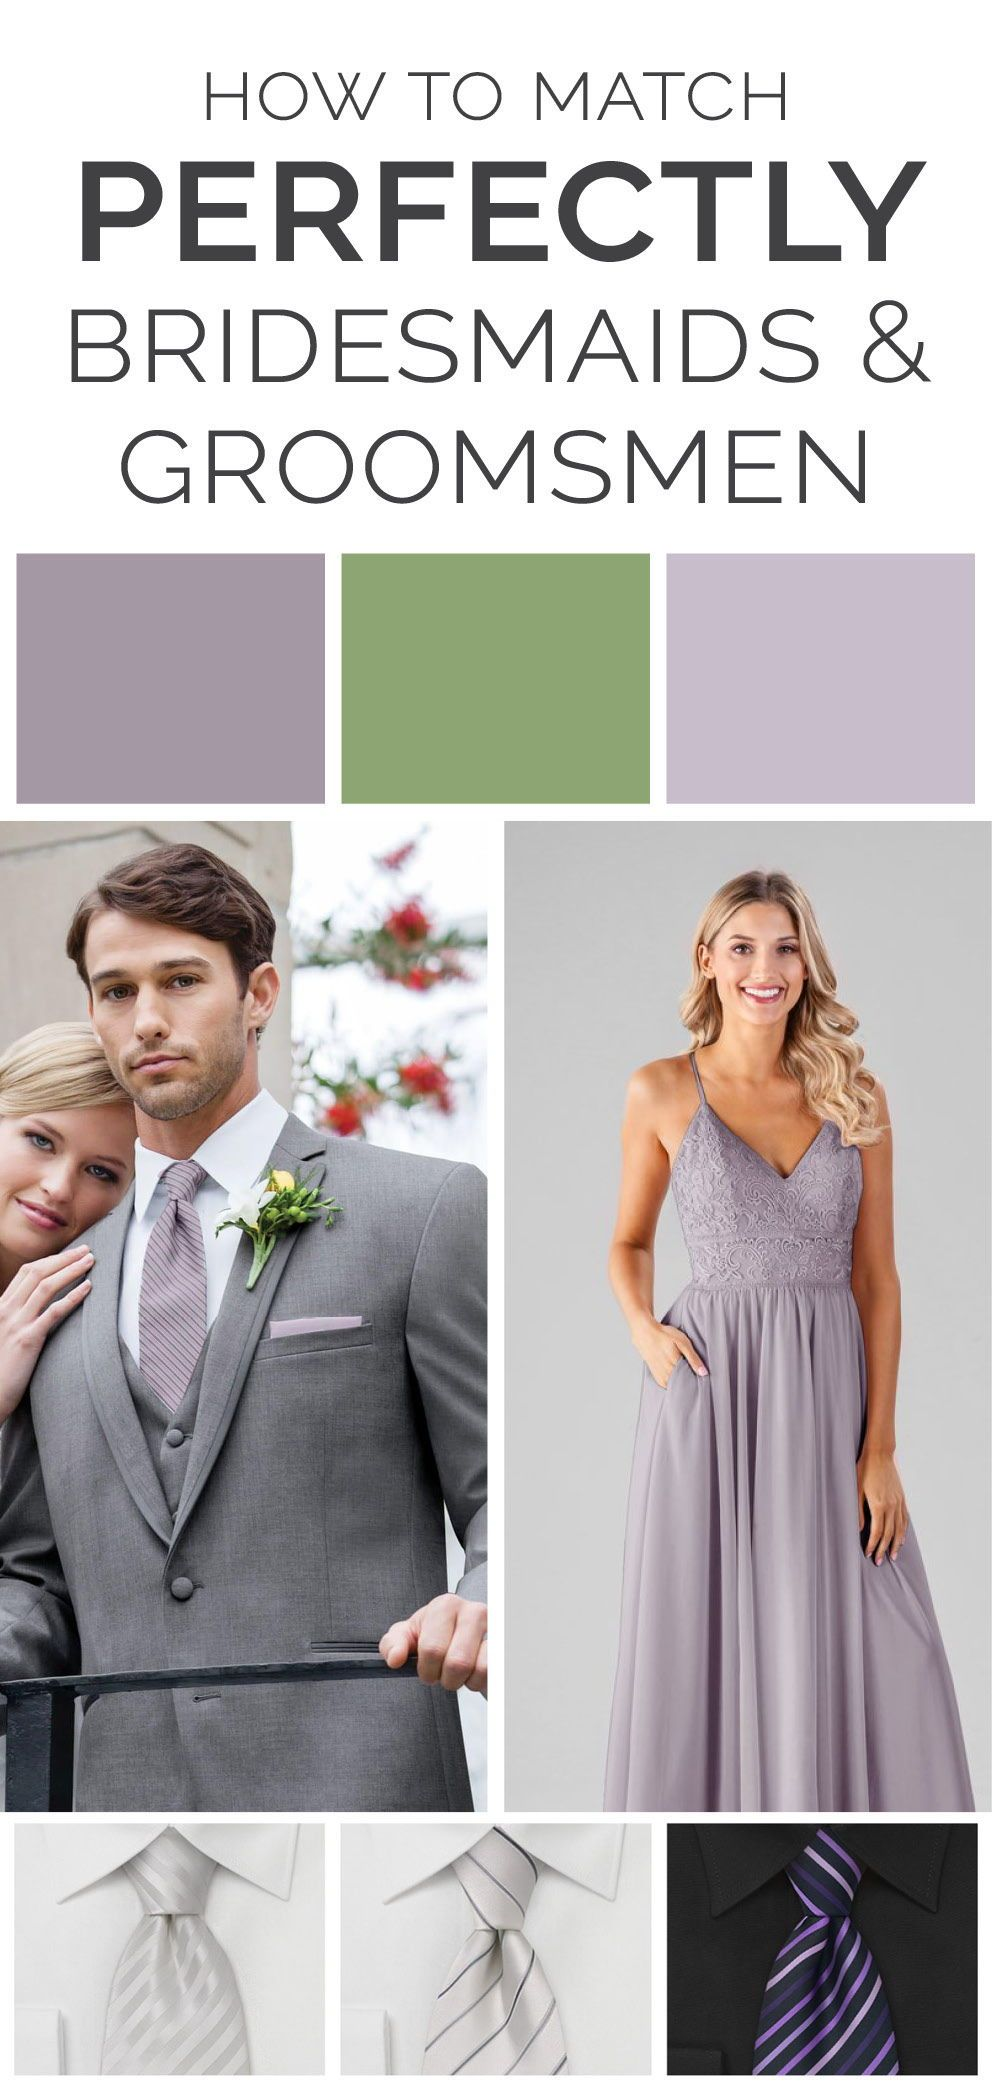 0fa8f526ce9 how to match bridesmaids and groomsmen